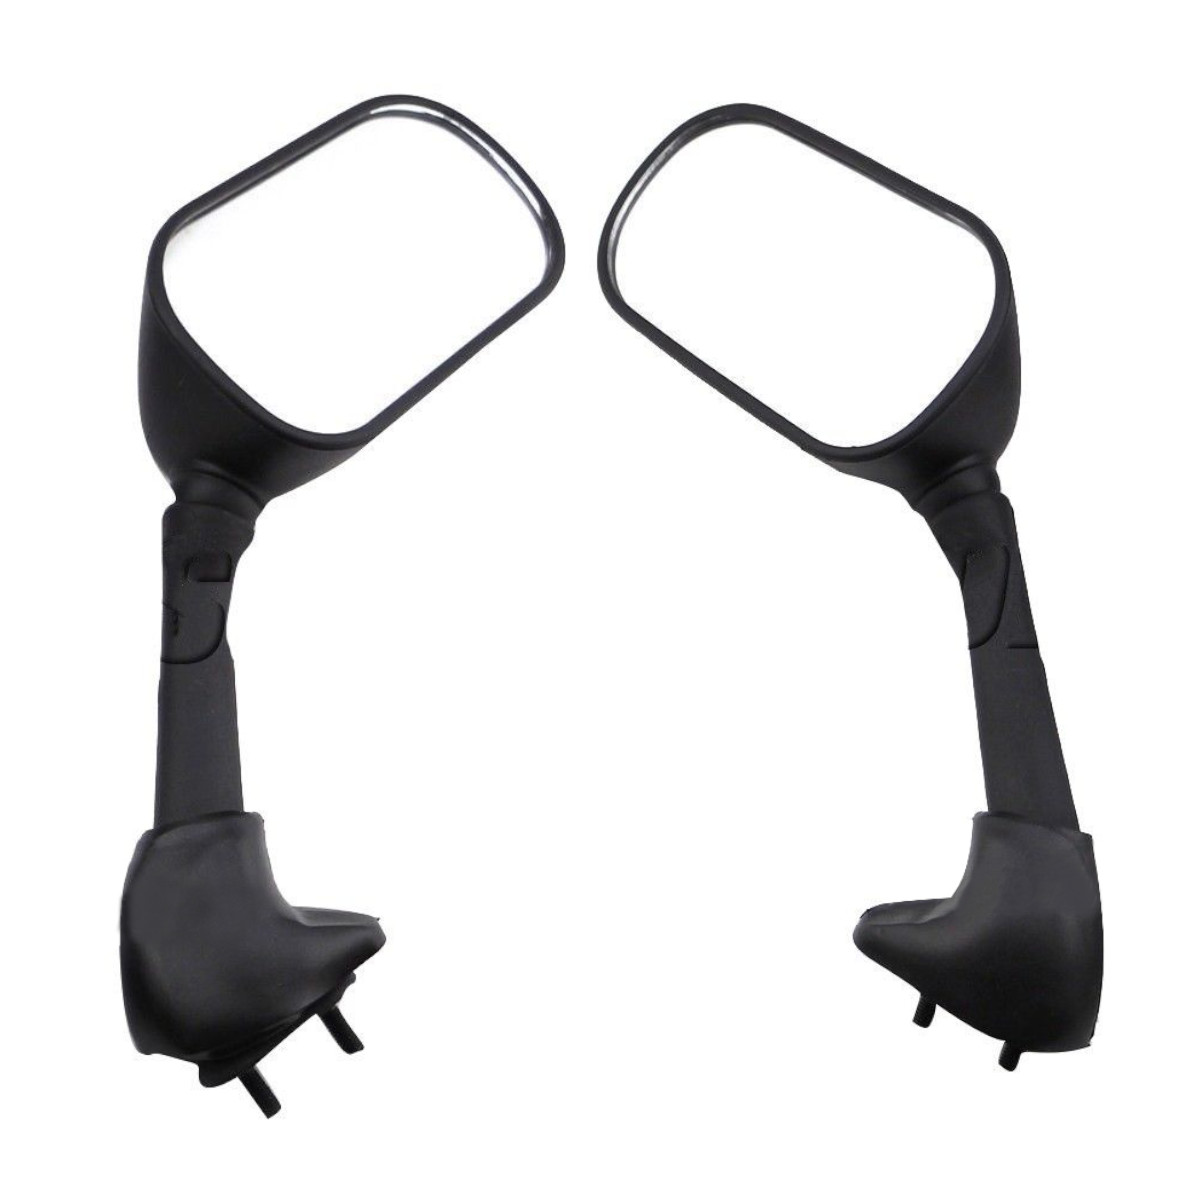 Pair Motorcycle Racing Rear View Side Mirrors For Yamaha YZF R6 R6S 2003-20